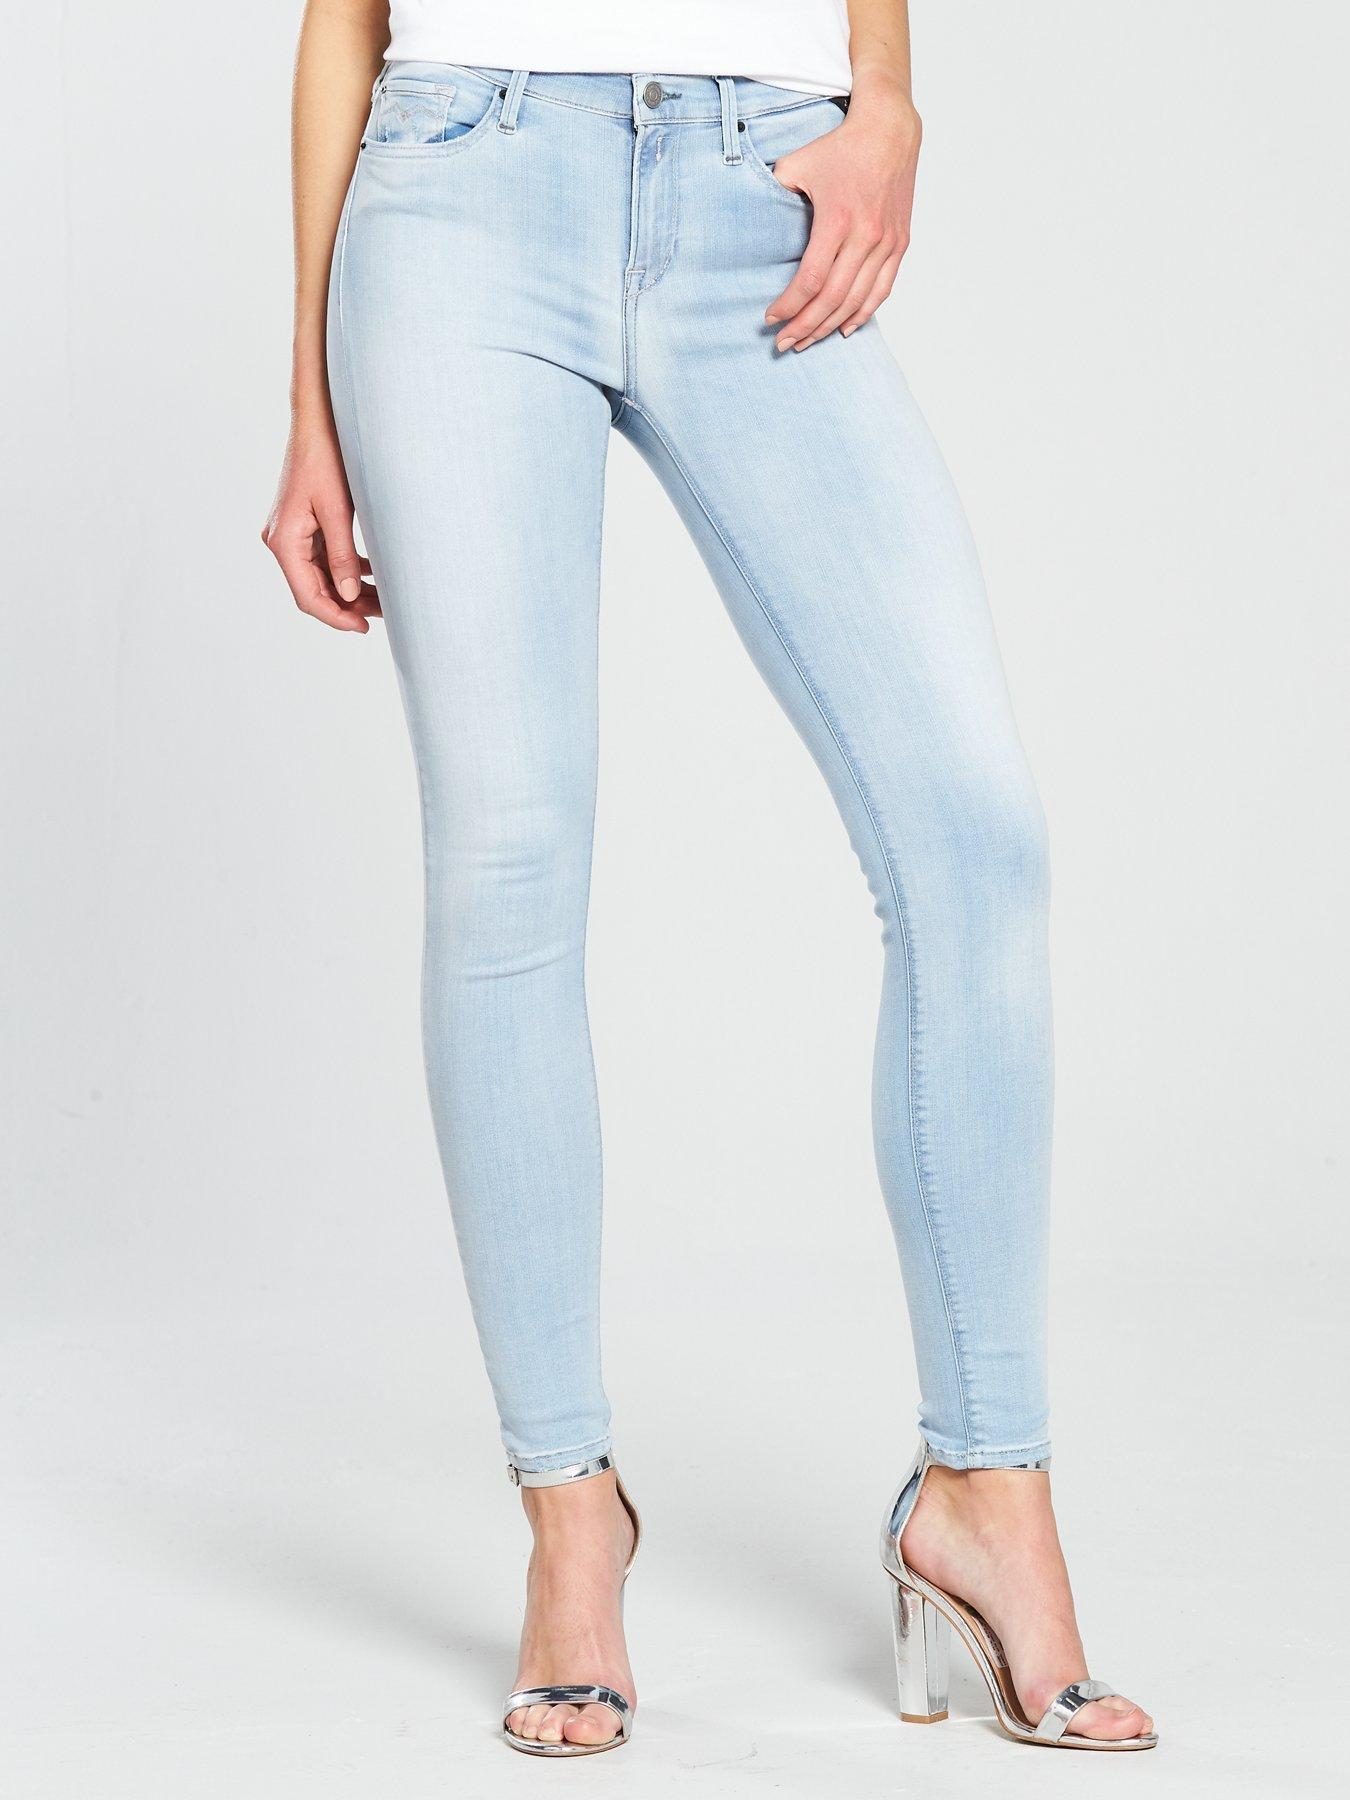 Replay Joi Hyperflex Jeggings - Light Wash